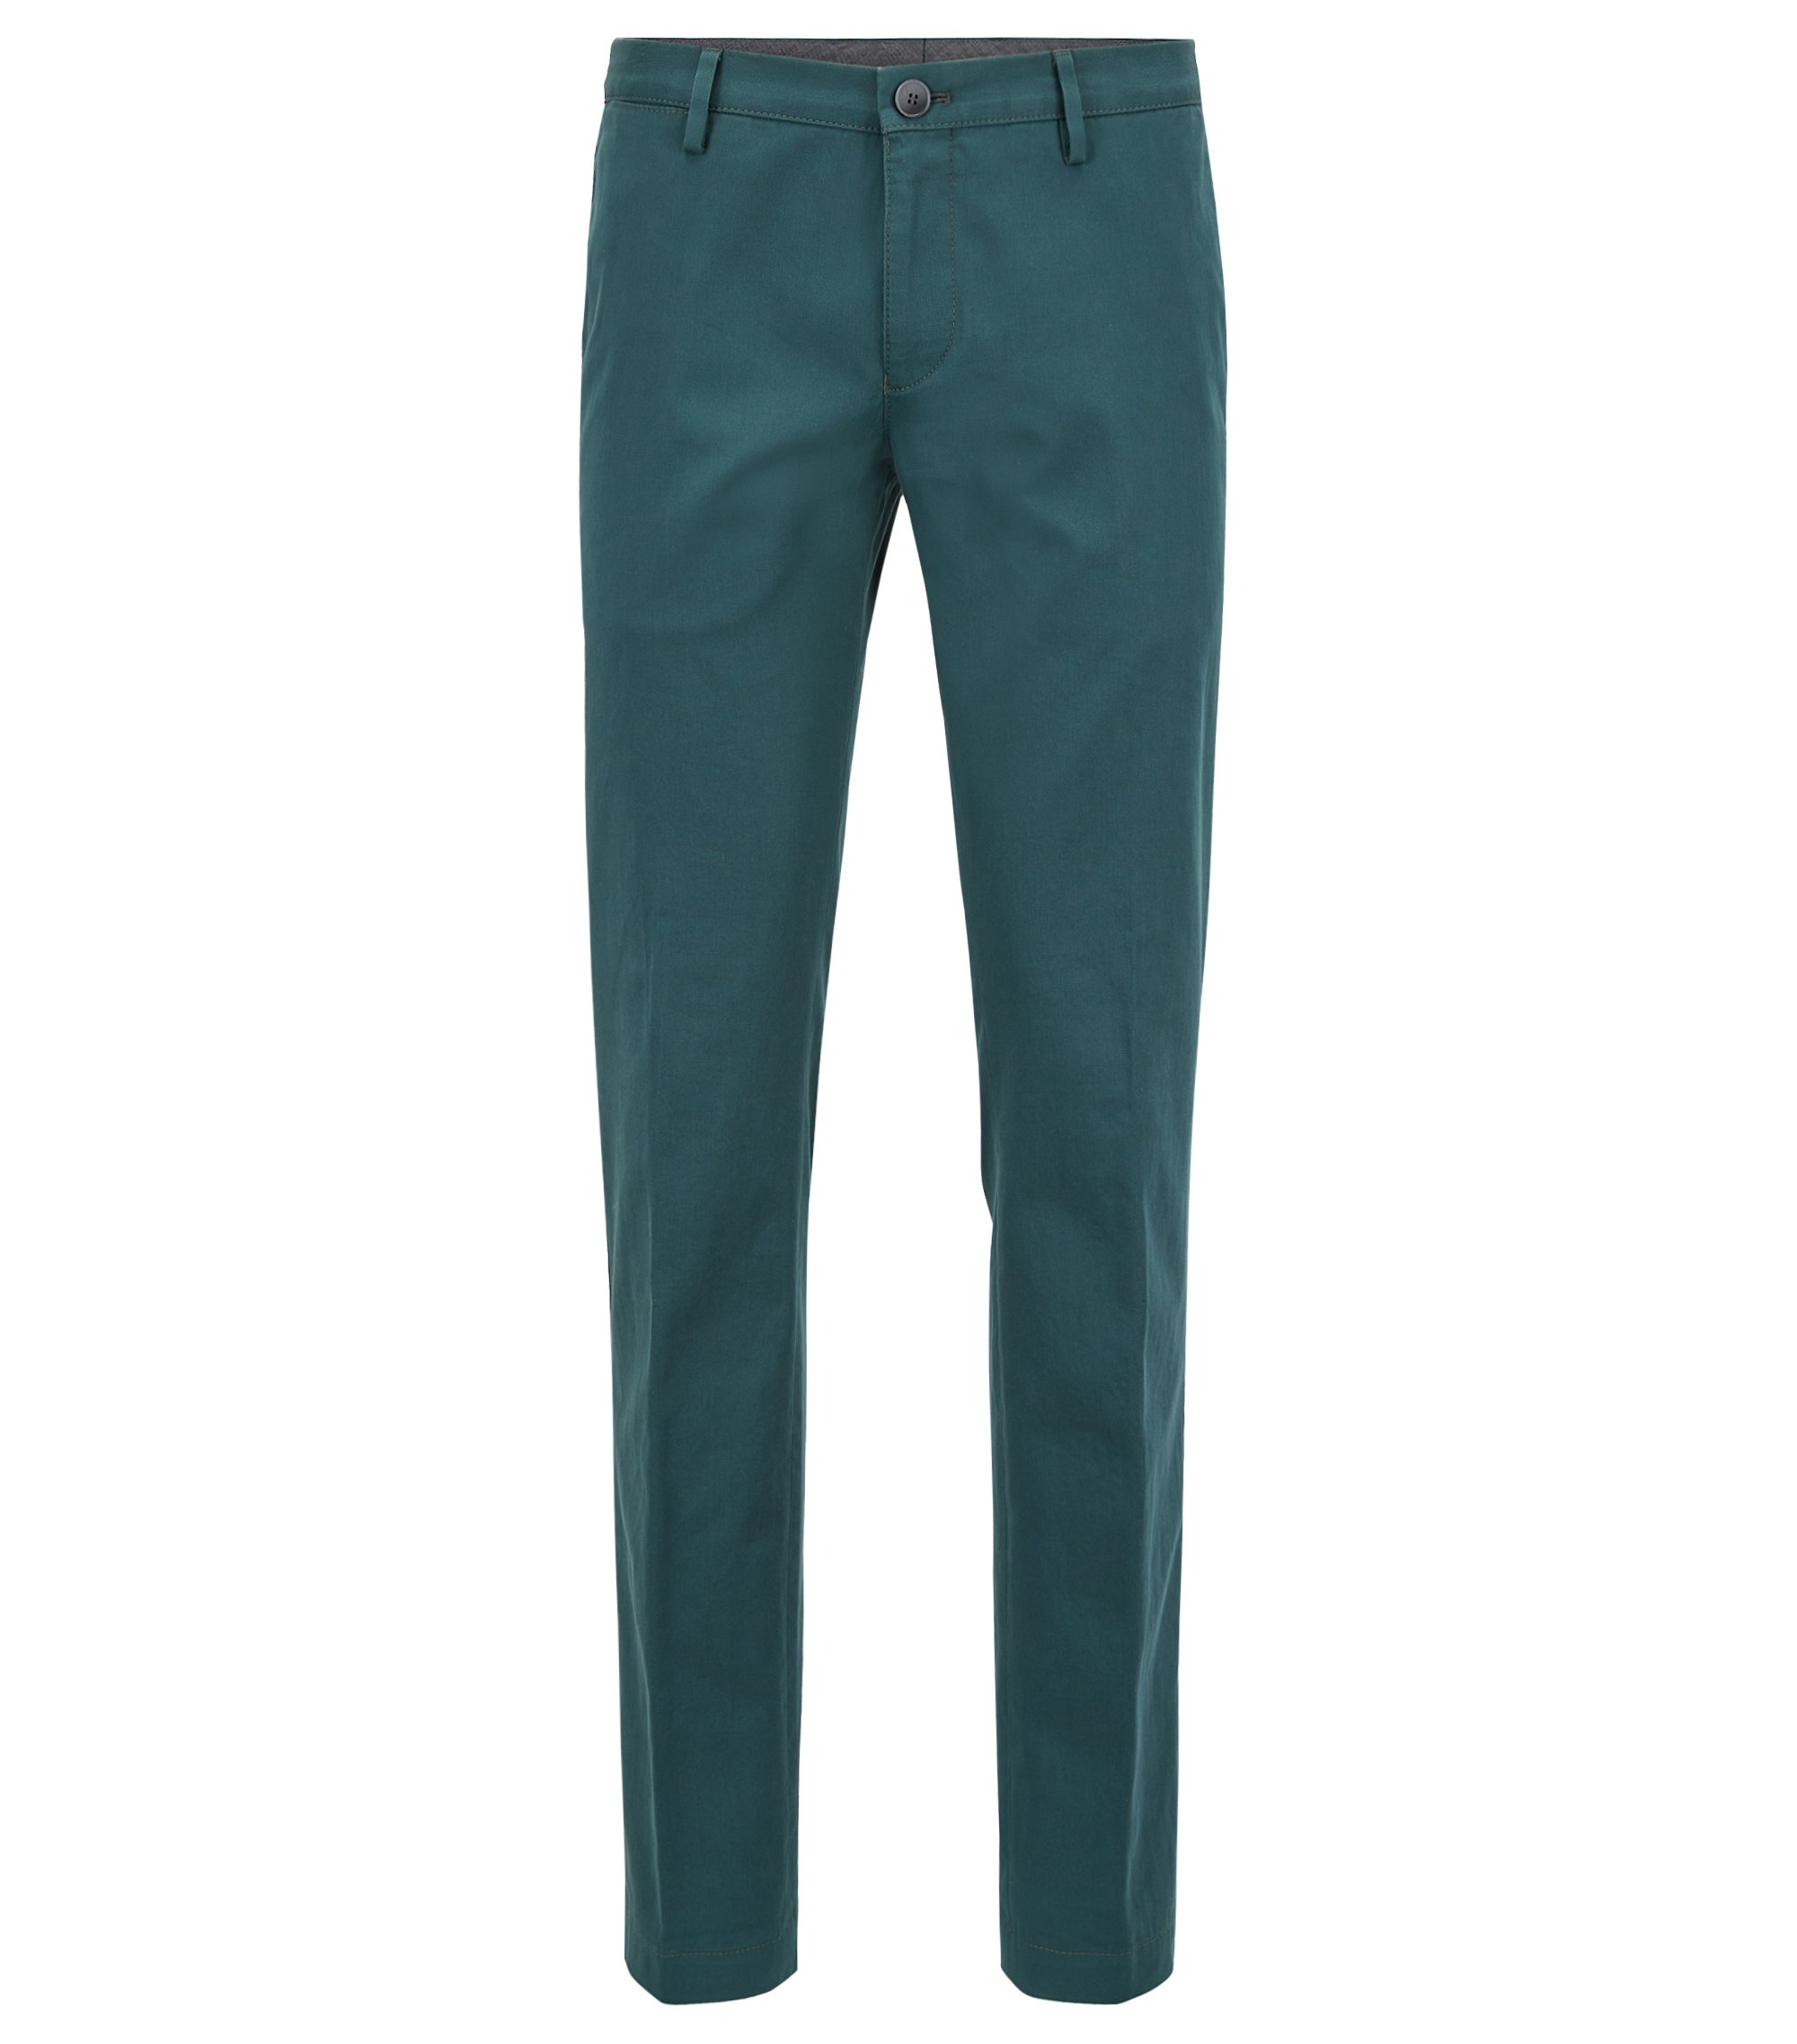 Chino Slim Fit en coton stretch, Vert sombre